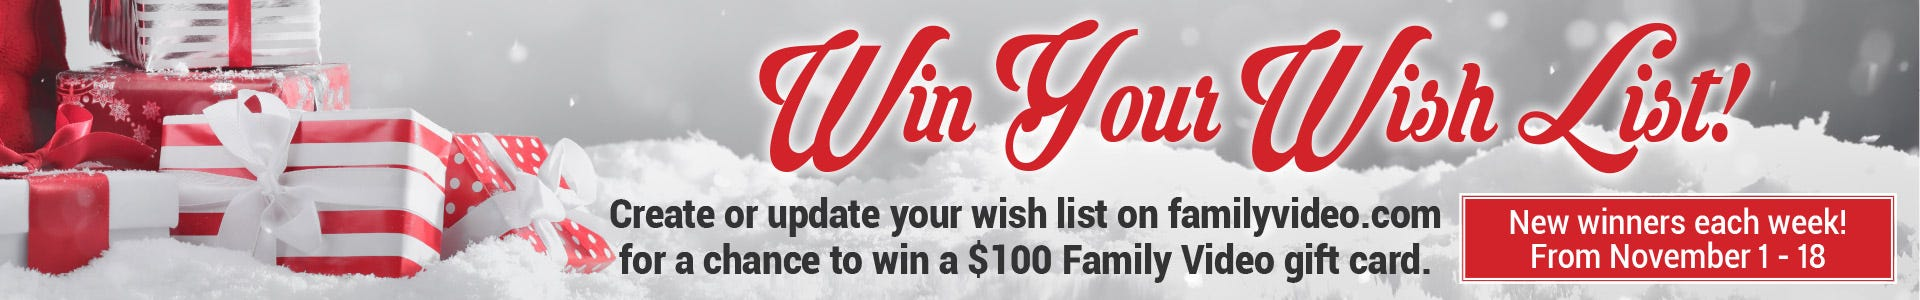 Win Your Wish List Giveaway